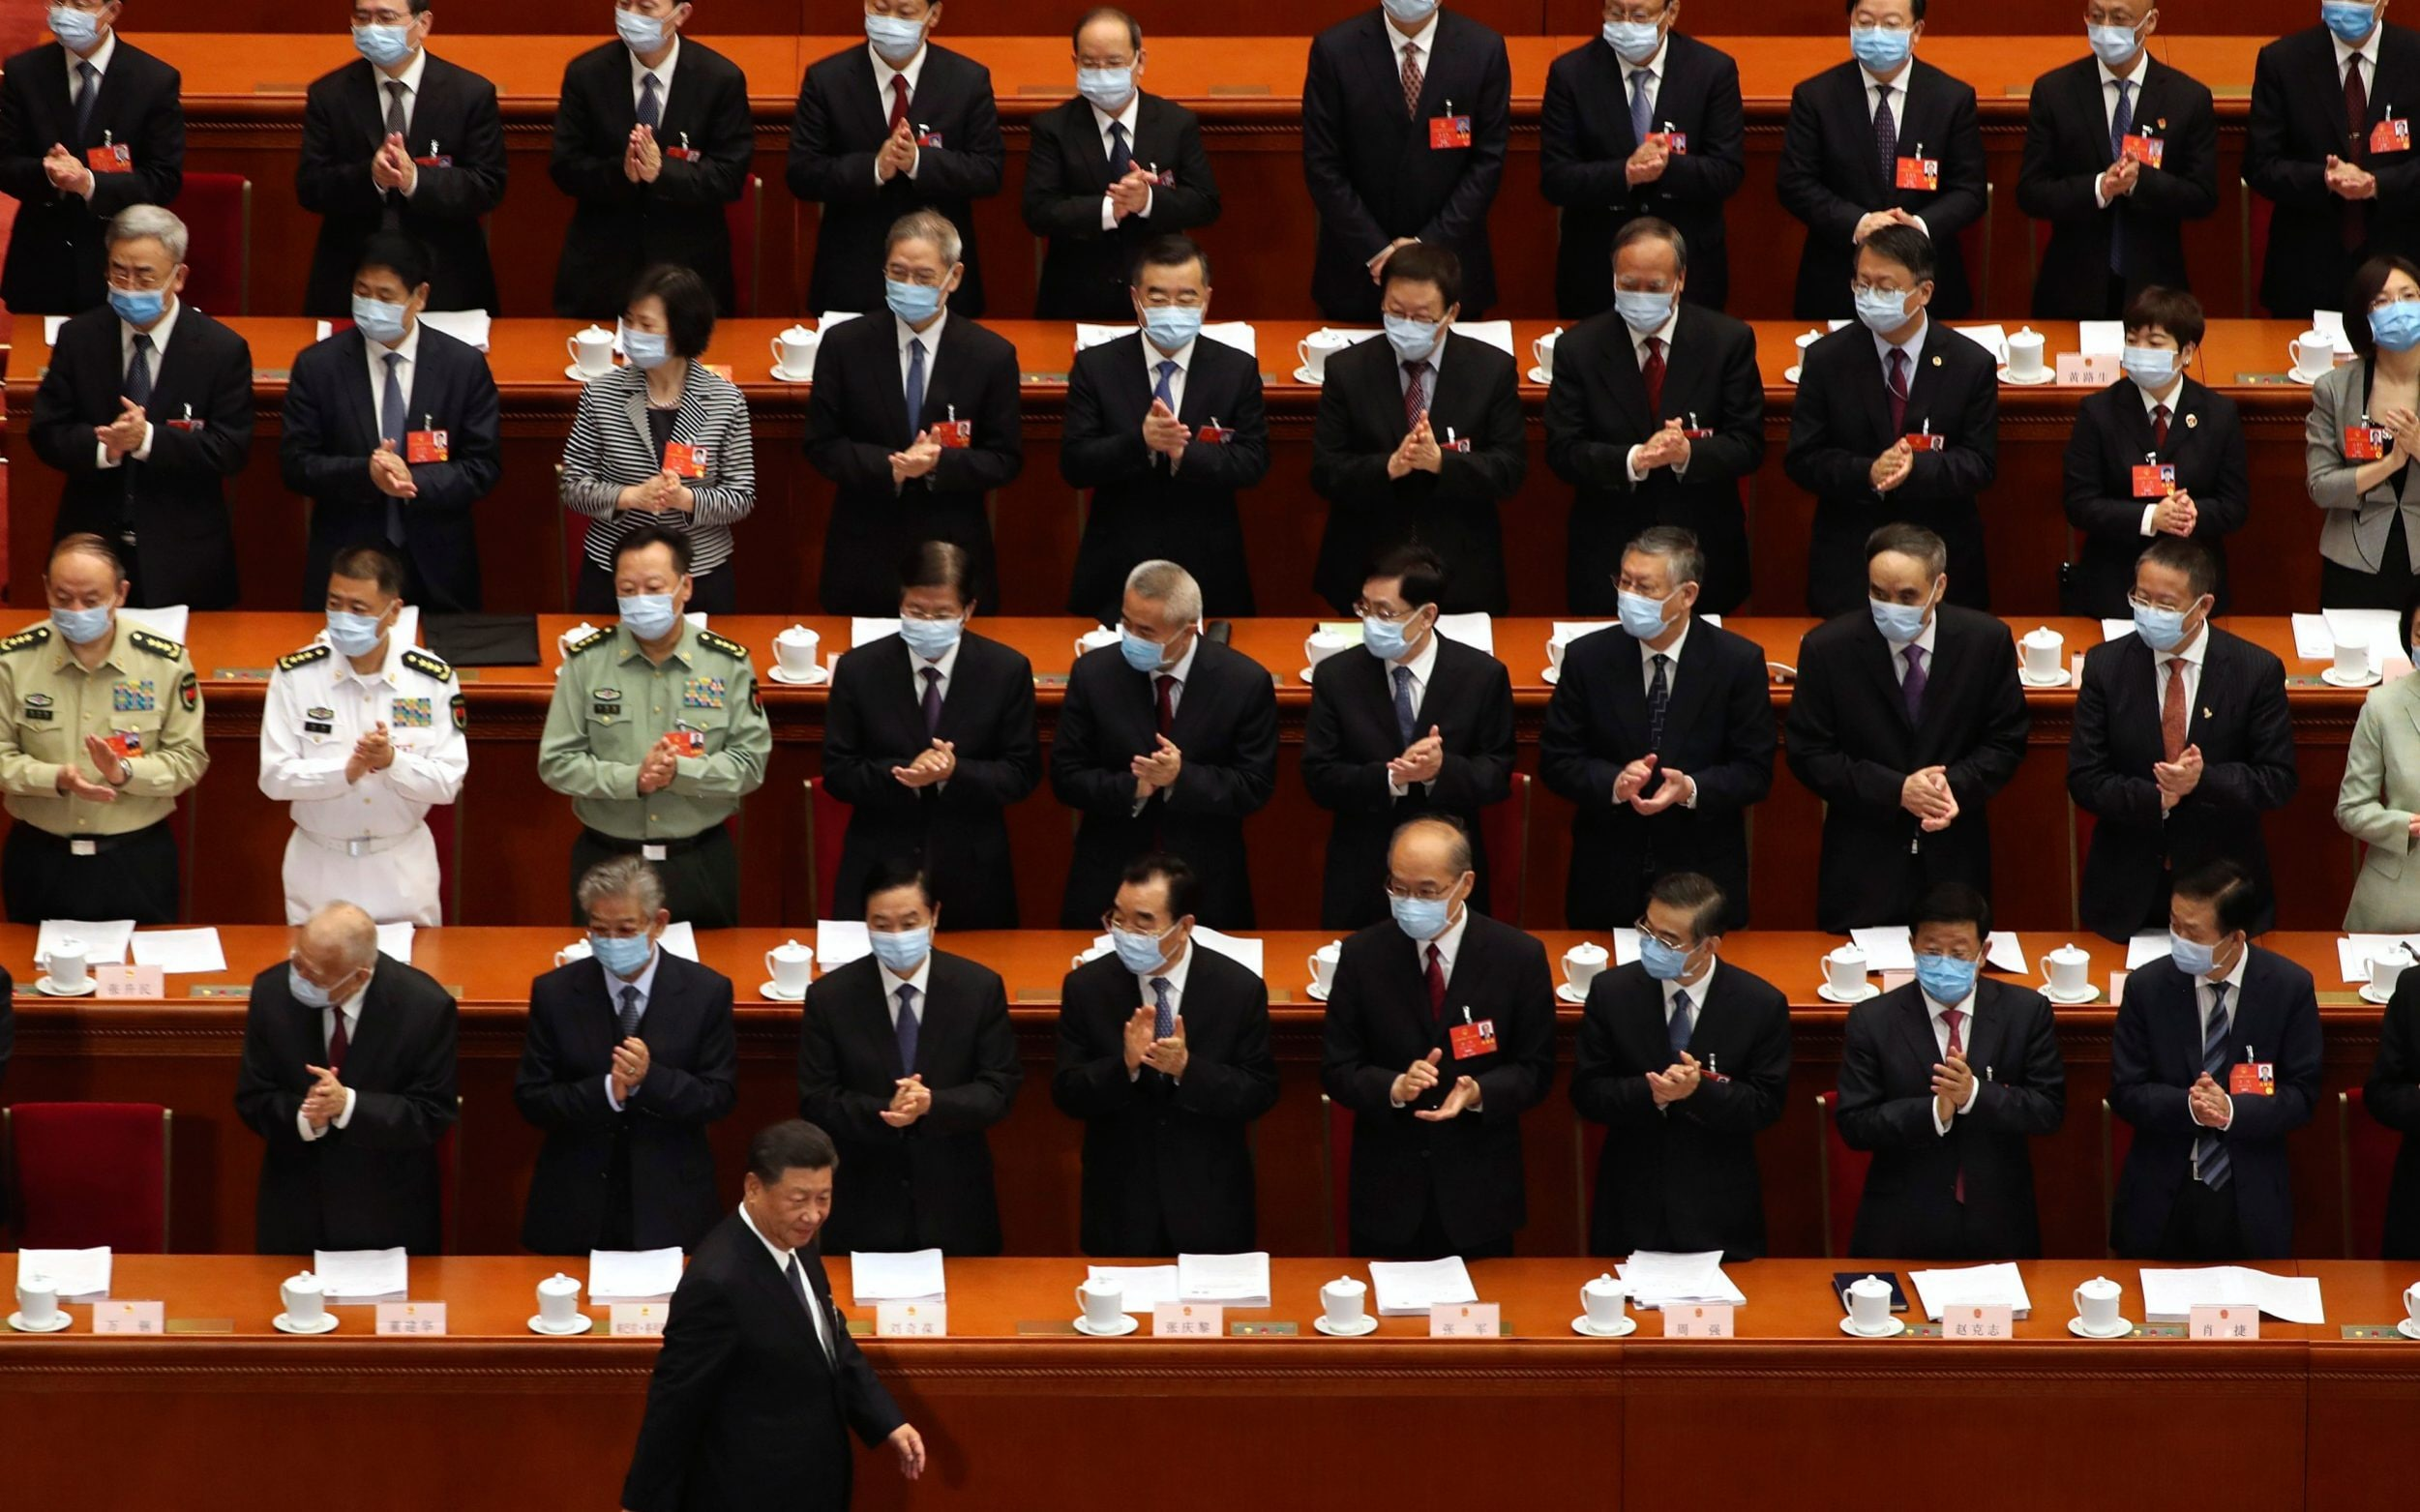 China's regime pledges to clamp down on dissent in Hong Kong at National People's Congress